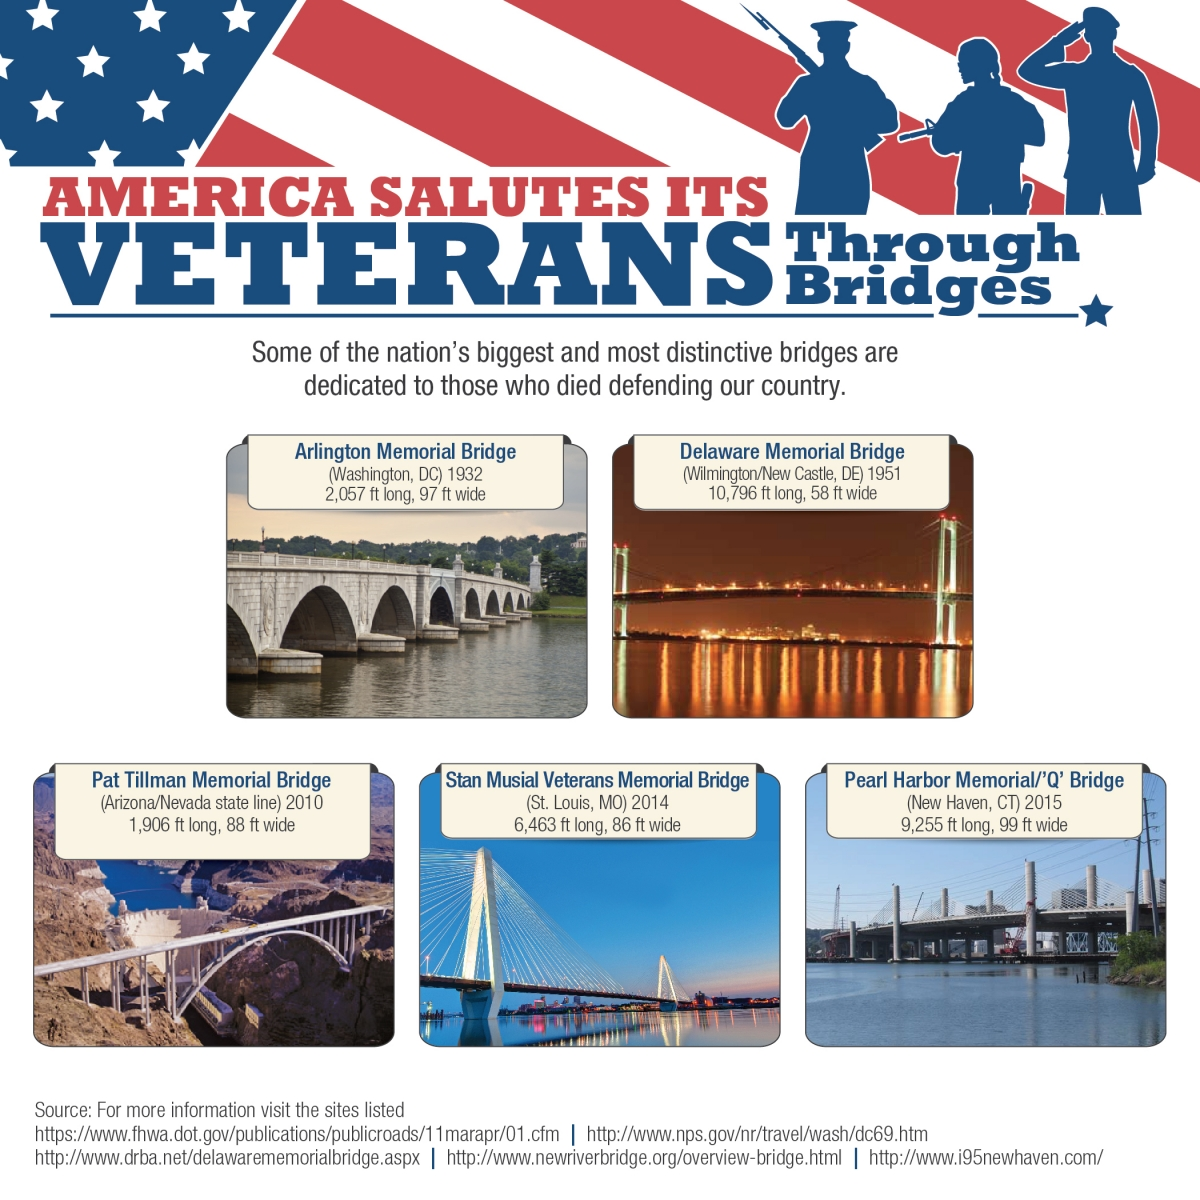 five bridges named in honor of America's Veterans